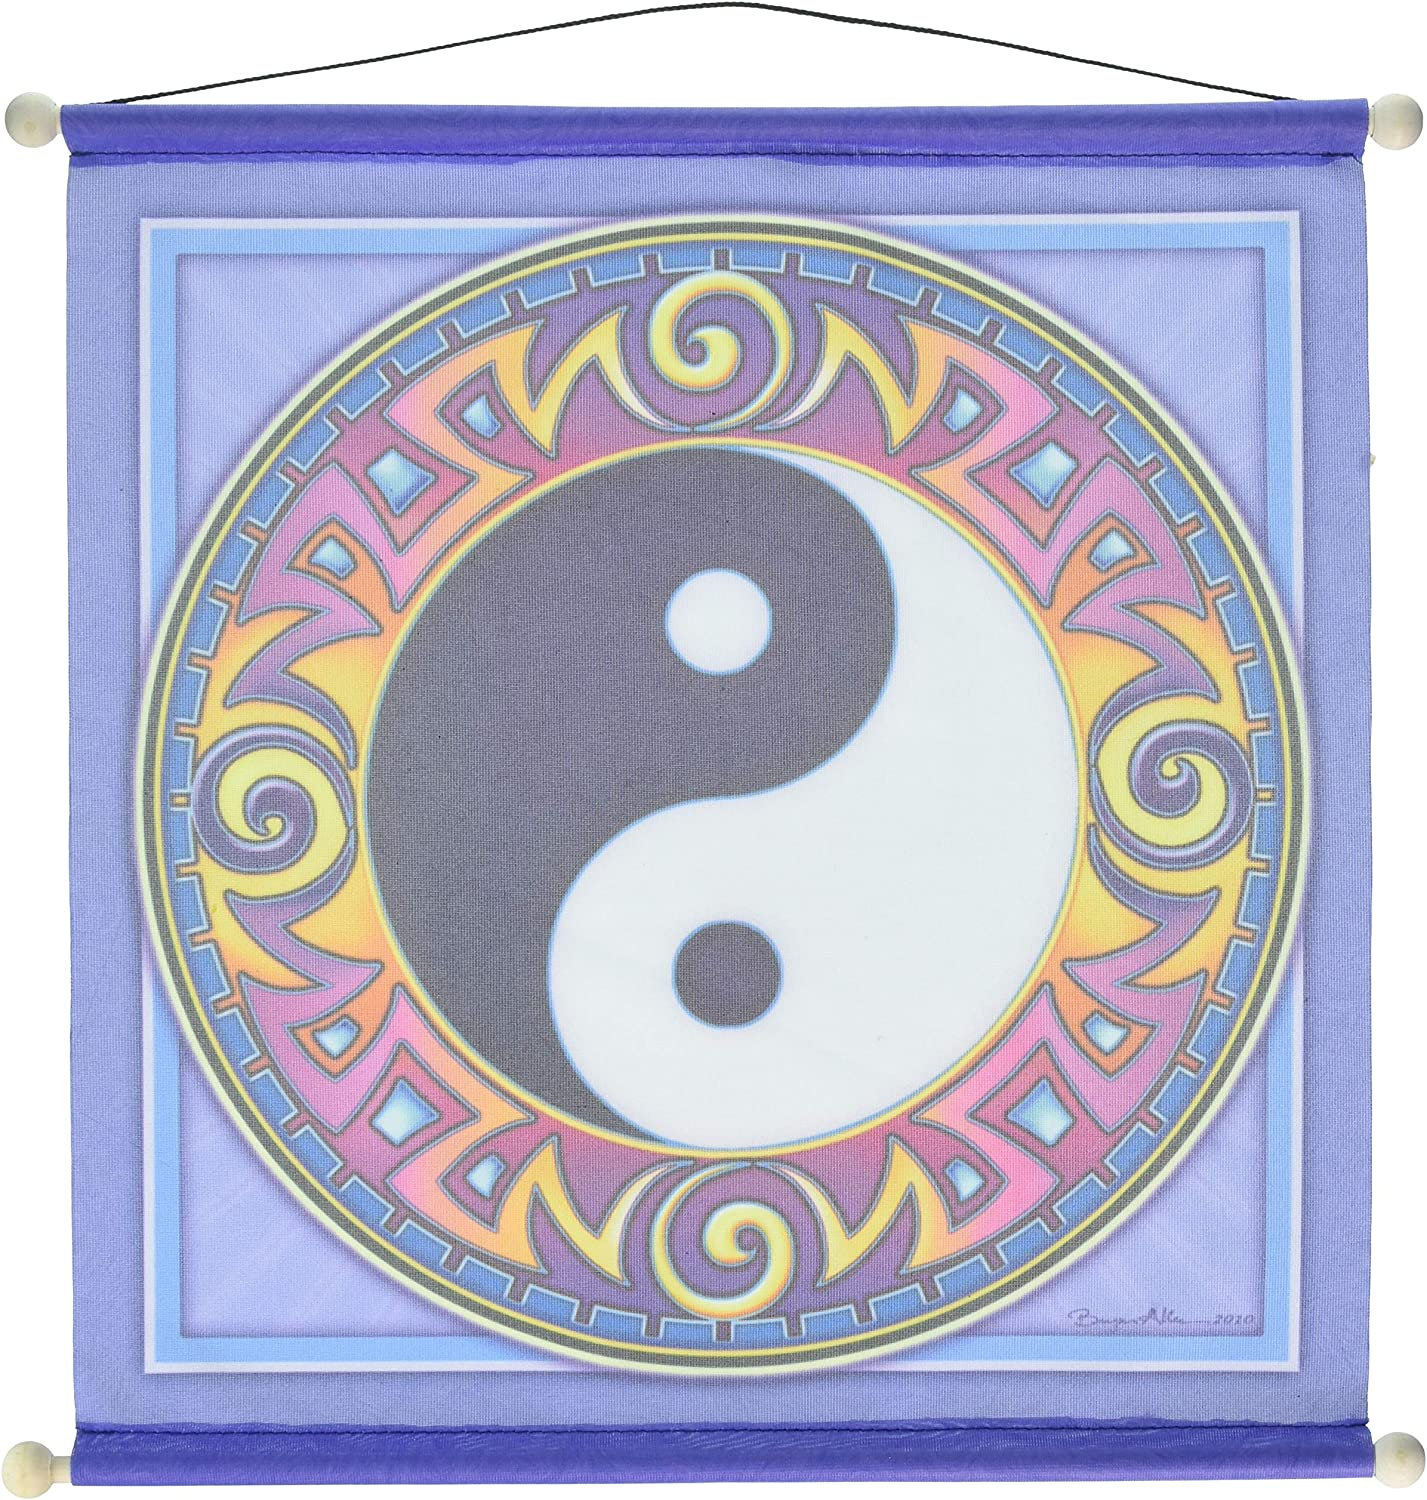 Amazon Com 15 X 15 Yin Yang Mandala Meditation Banner Wall Banners Kitchen Dining